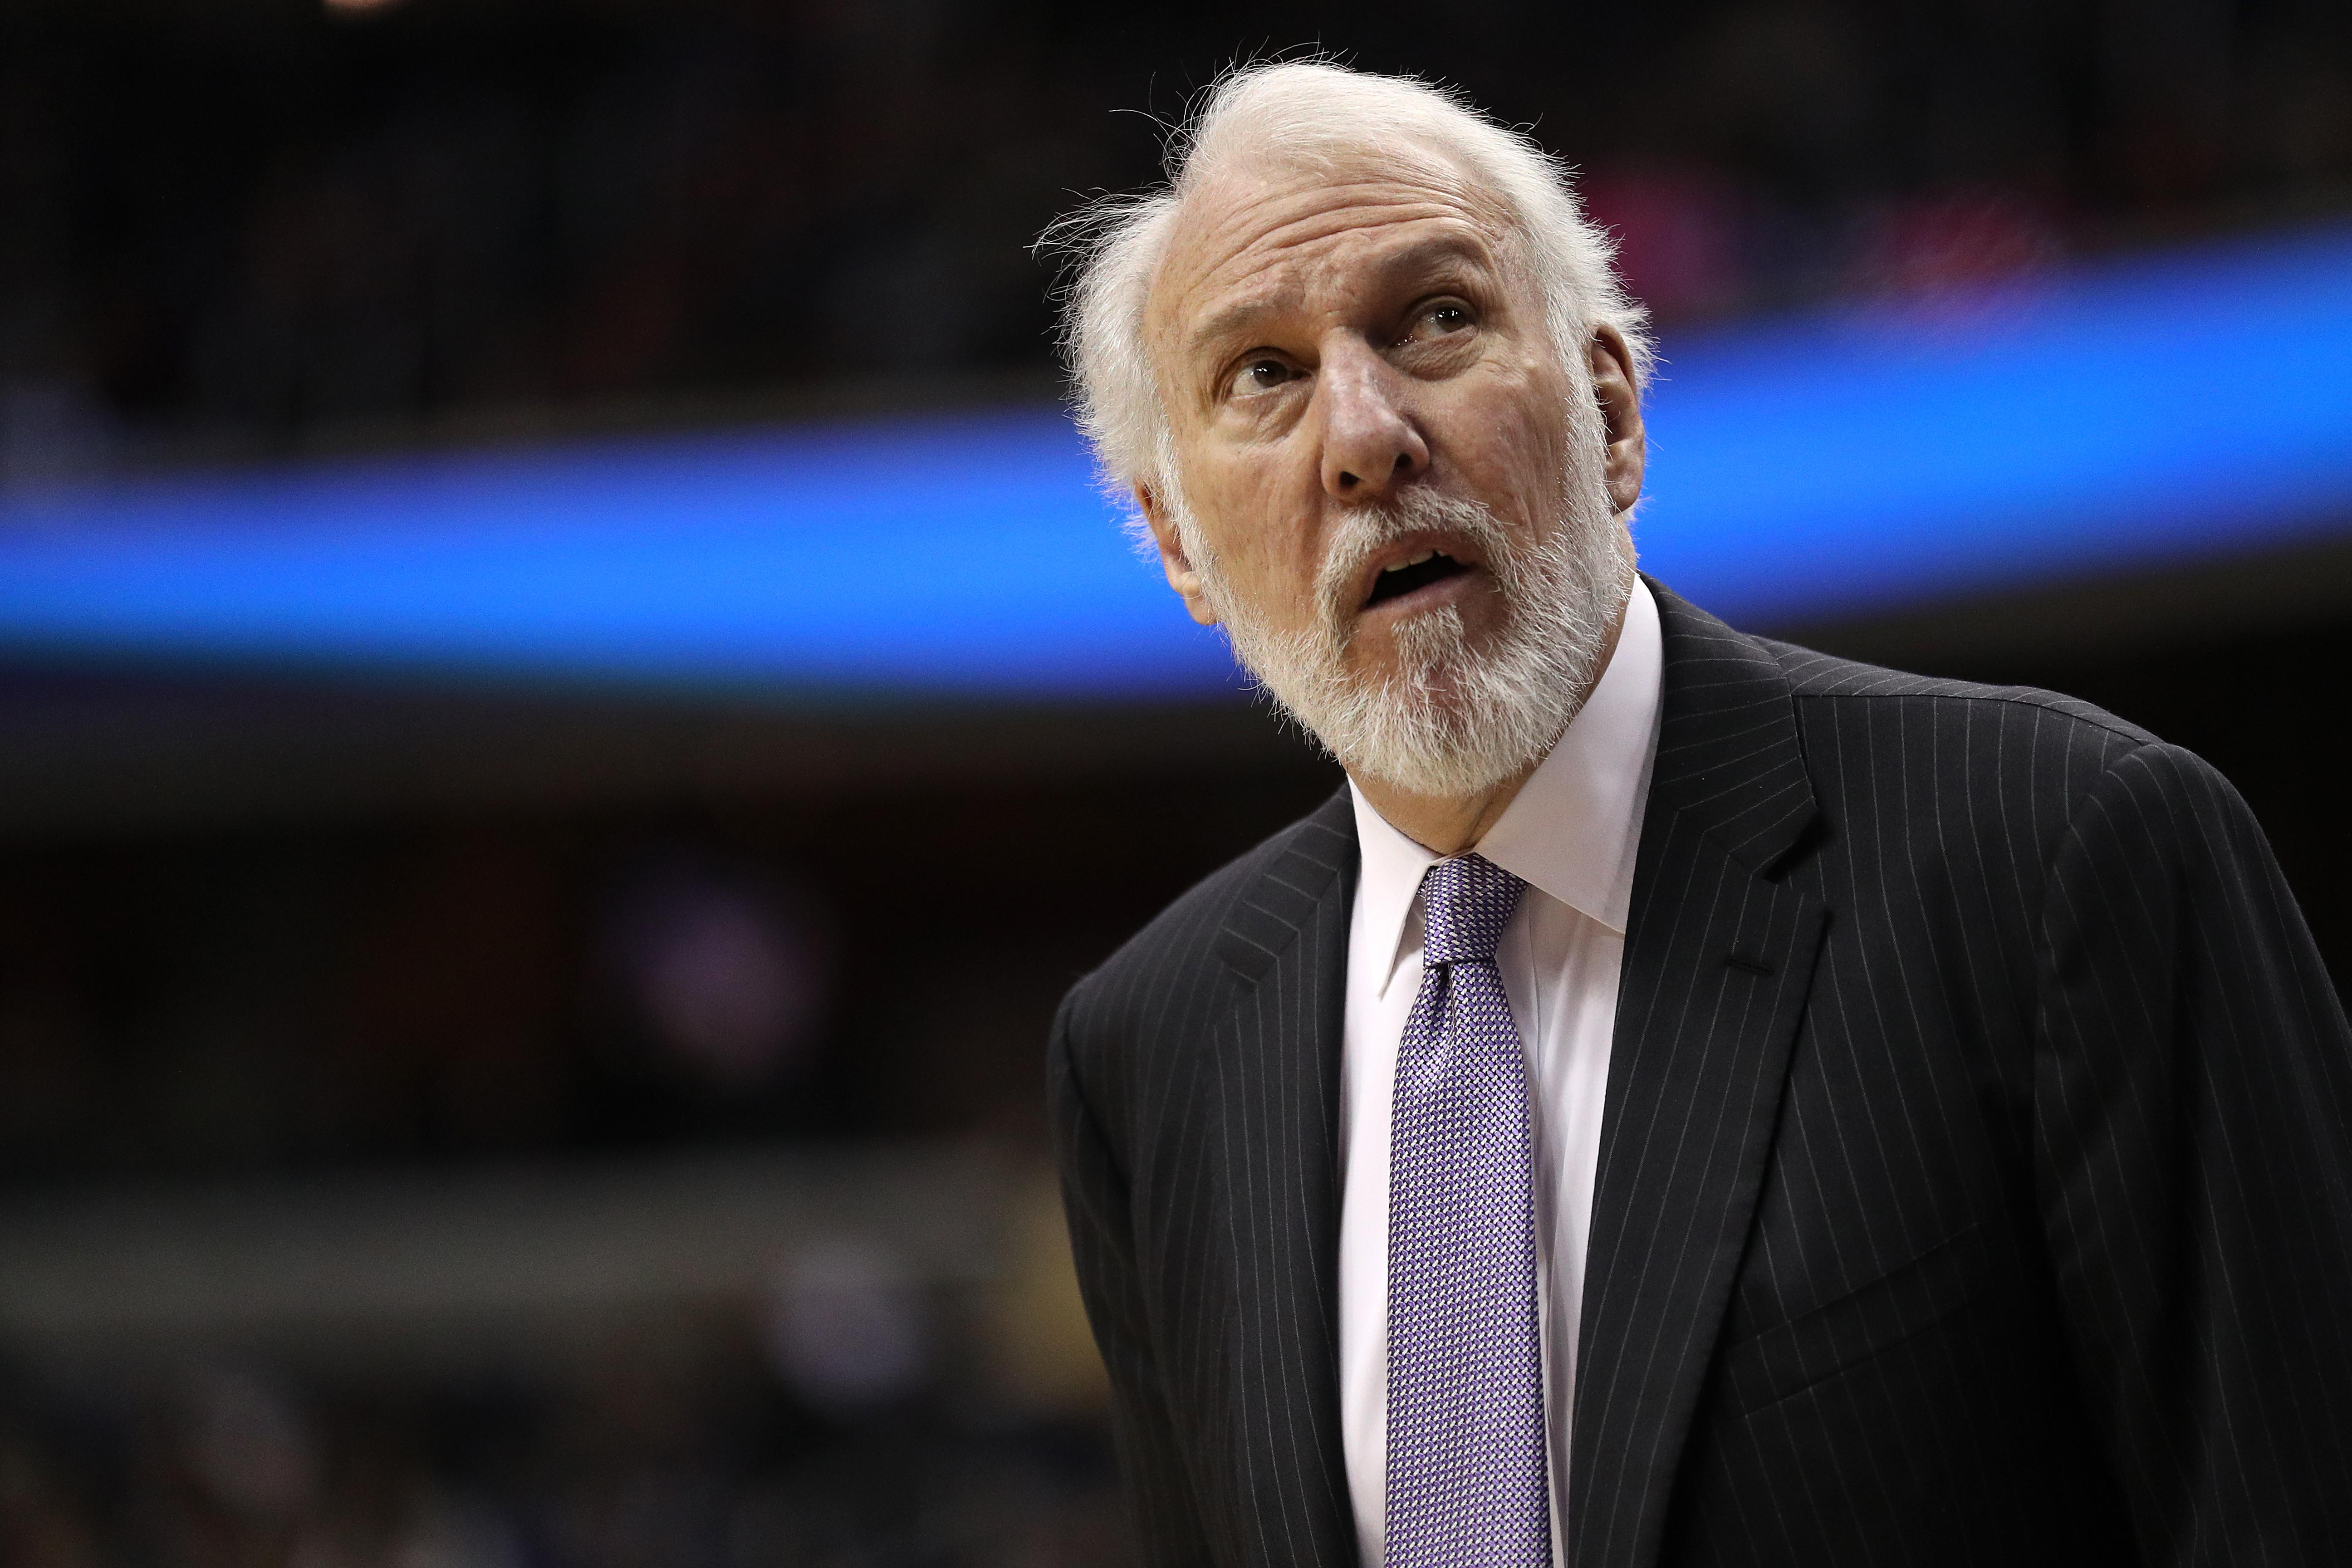 WASHINGTON, DC - MARCH 27: Head coach Gregg Popovich of the San Antonio Spurs looks on against the Washington Wizards during the first half at Capital One Arena on March 27, 2018 in Washington, DC. NOTE TO USER: User expressly acknowledges and agrees that, by downloading and or using this photograph, User is consenting to the terms and conditions of the Getty Images License Agreement. (Photo by Patrick Smith/Getty Images)